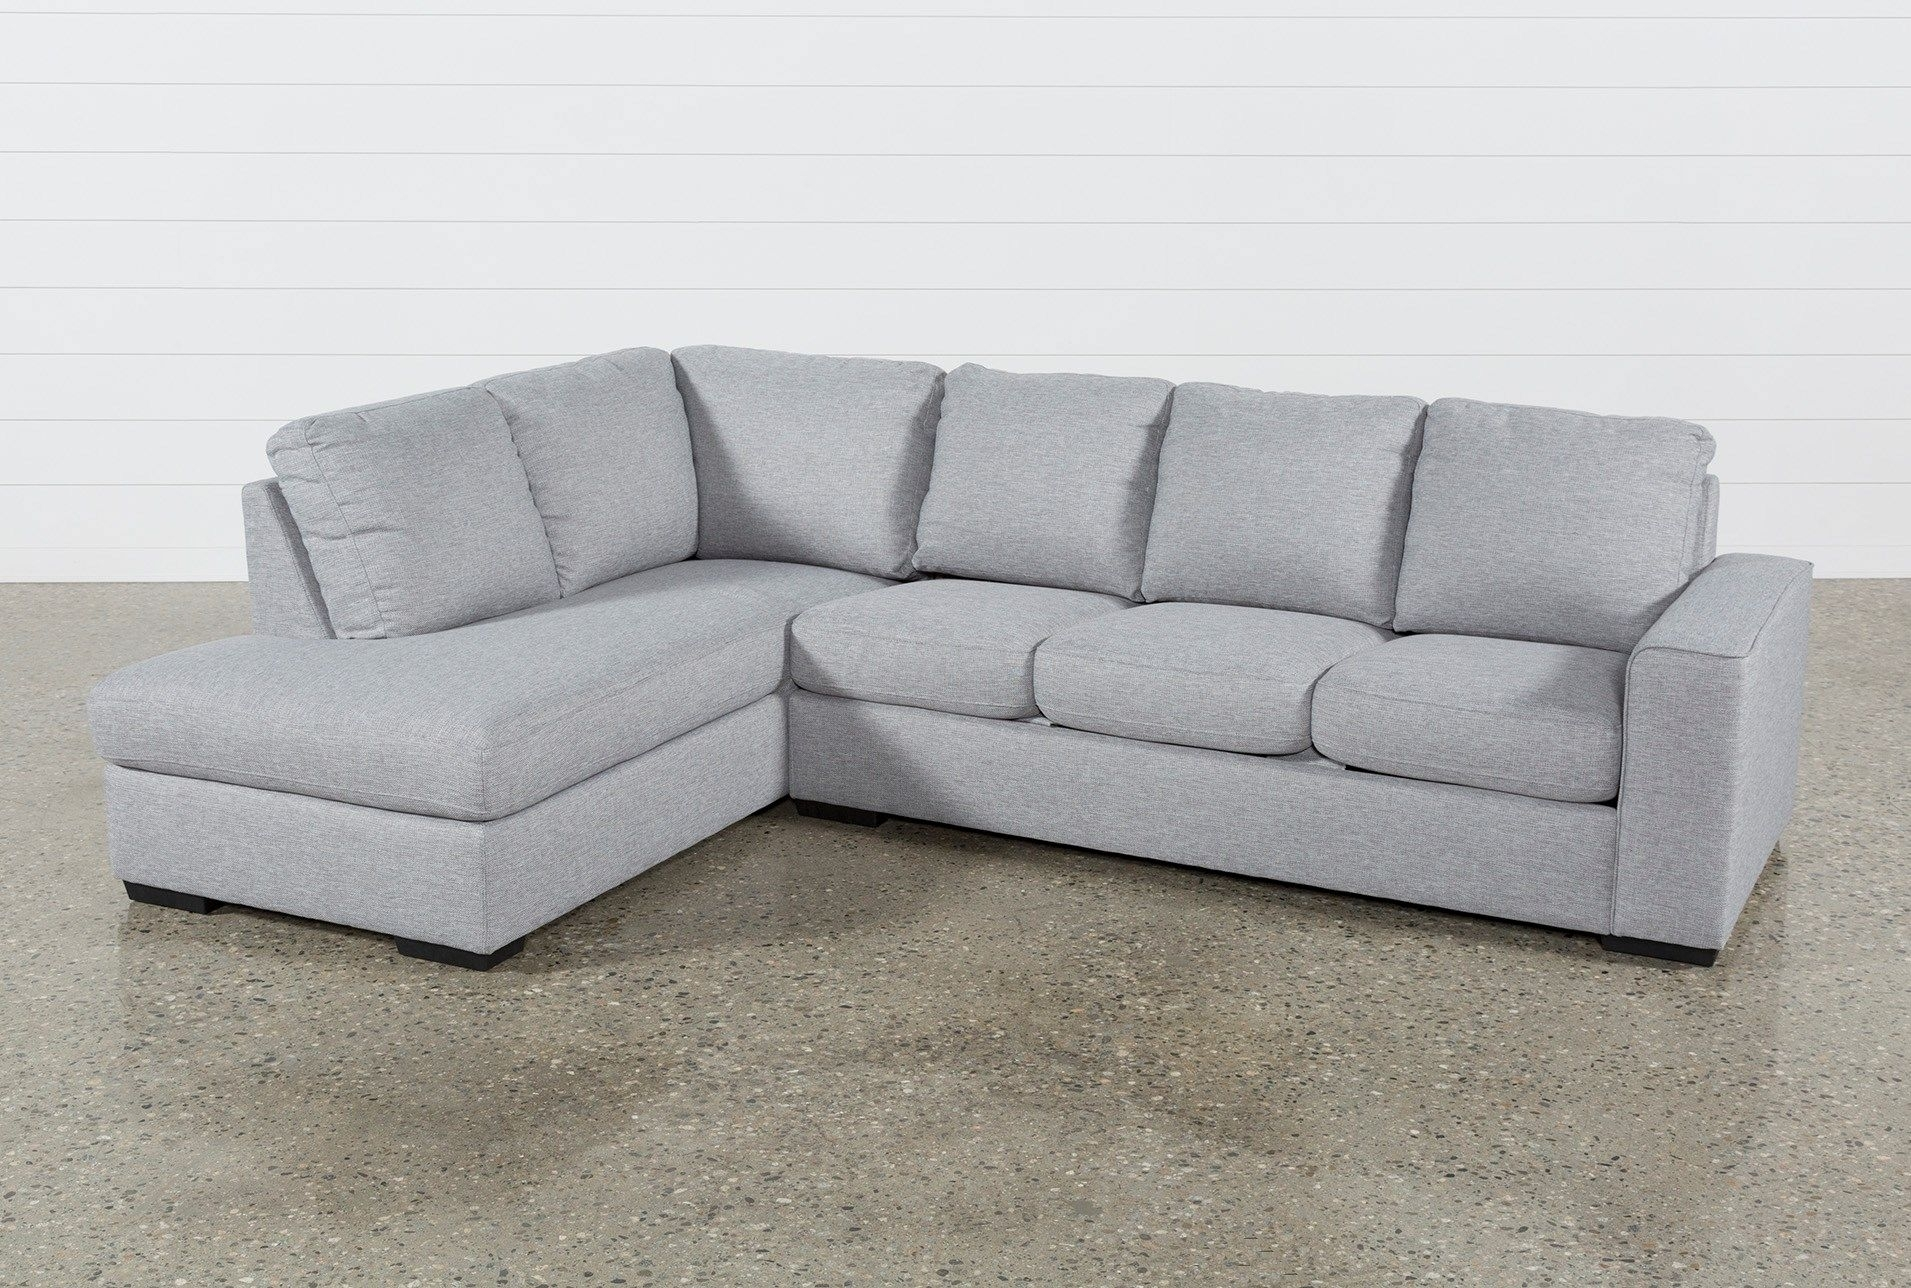 Lucy Grey 2 Piece Sectional W/laf Chaise | Tx House | Pinterest With Lucy Dark Grey 2 Piece Sectionals With Laf Chaise (View 2 of 25)